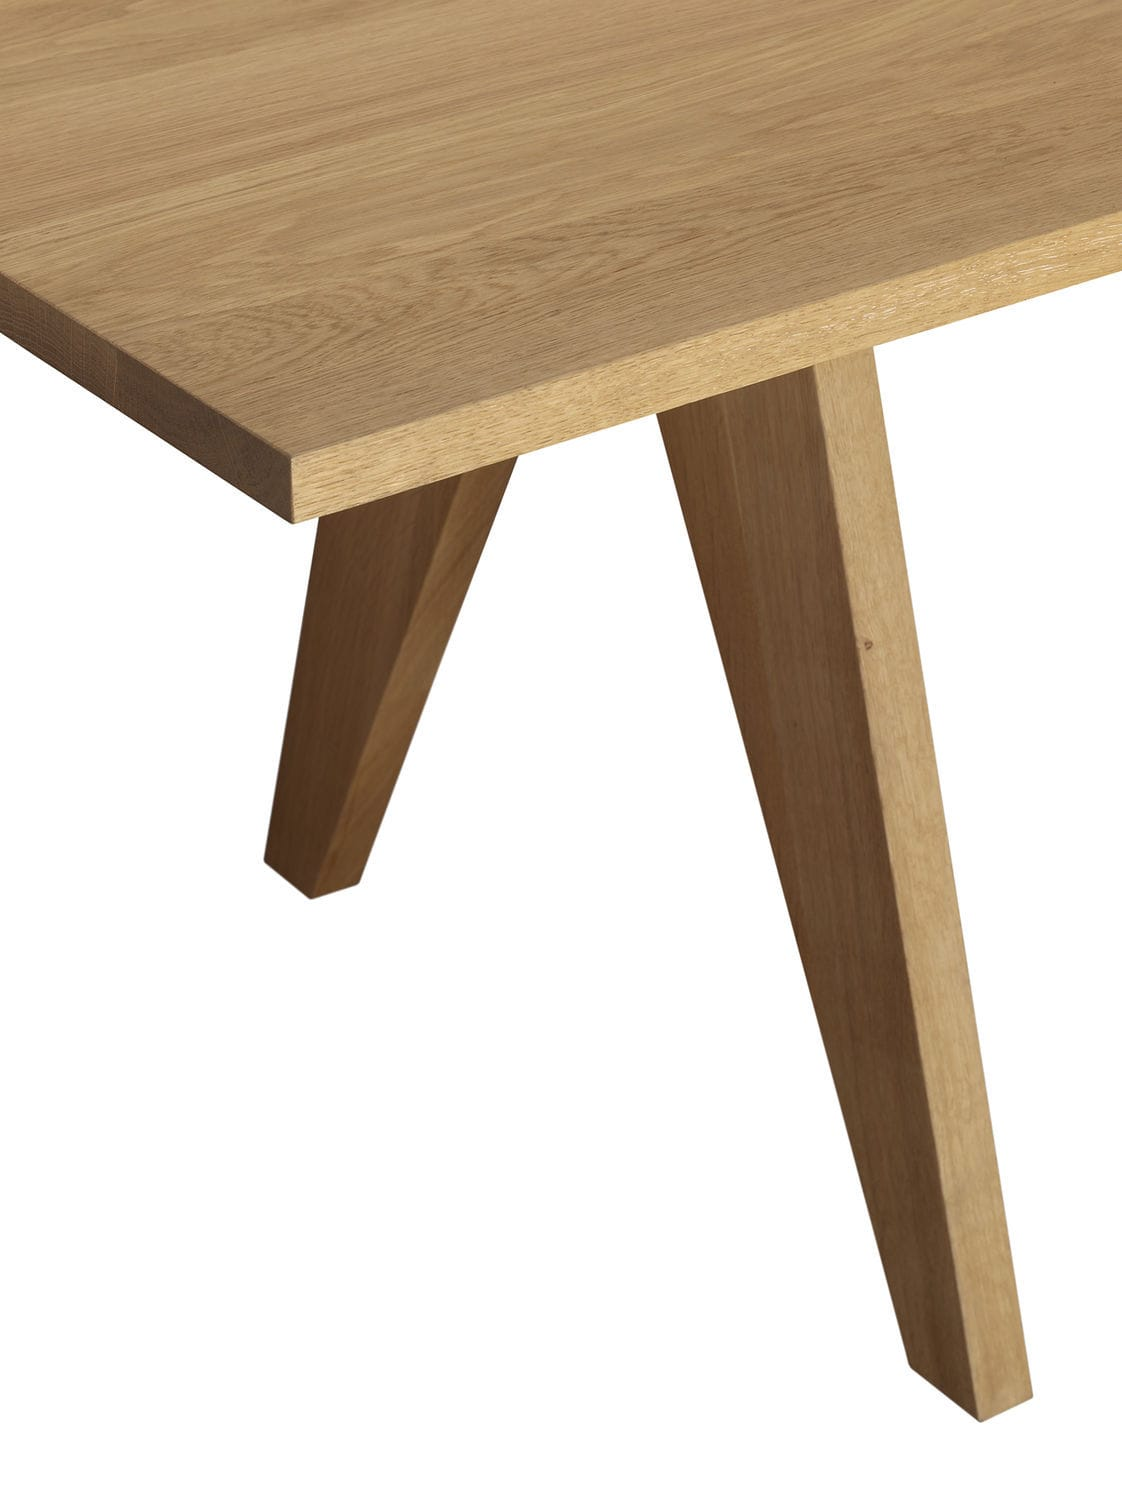 Contemporary dining table / oak / solid wood / oiled wood - FK06 ...